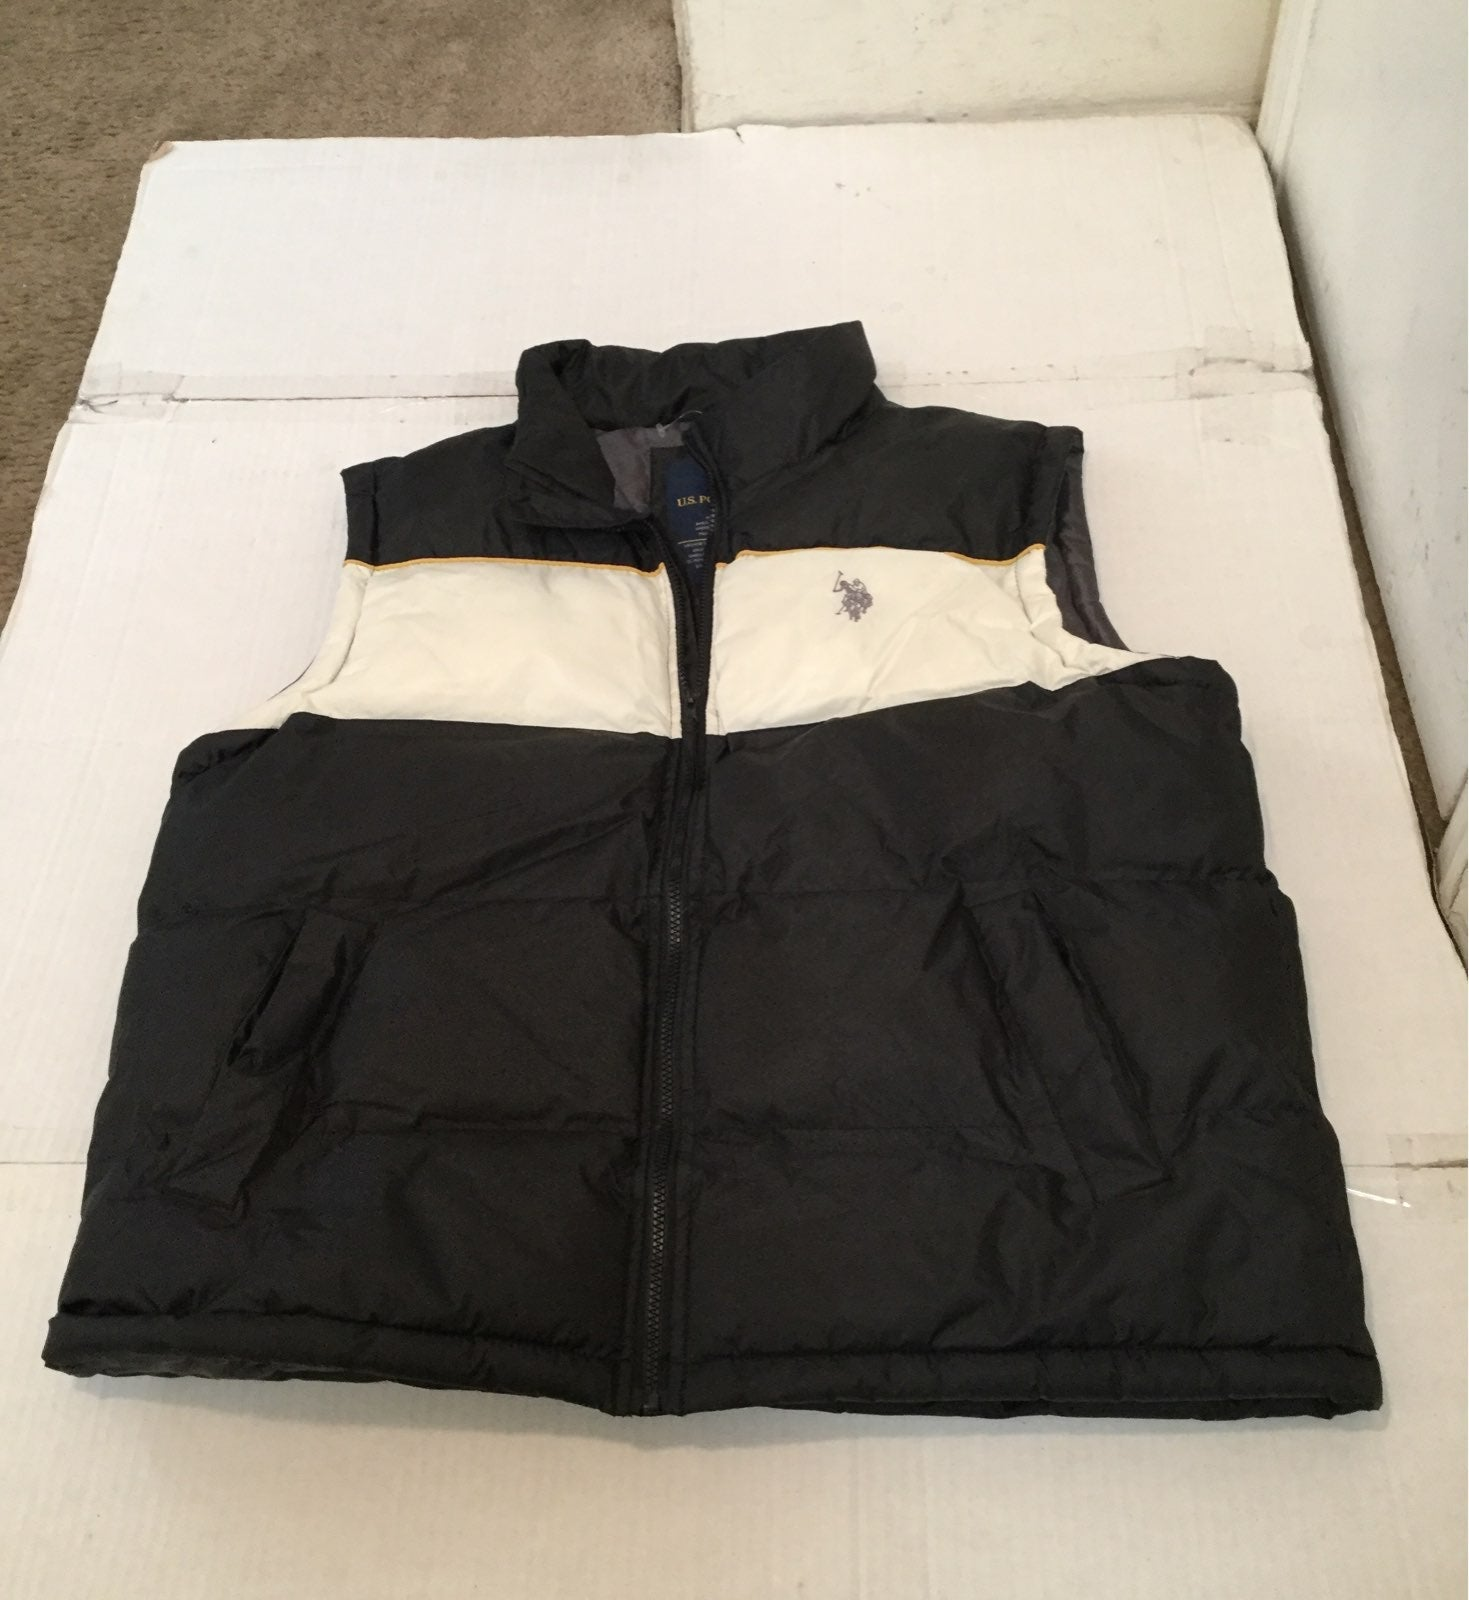 MENS US POLO ASSN PUFFY VEST LARGE